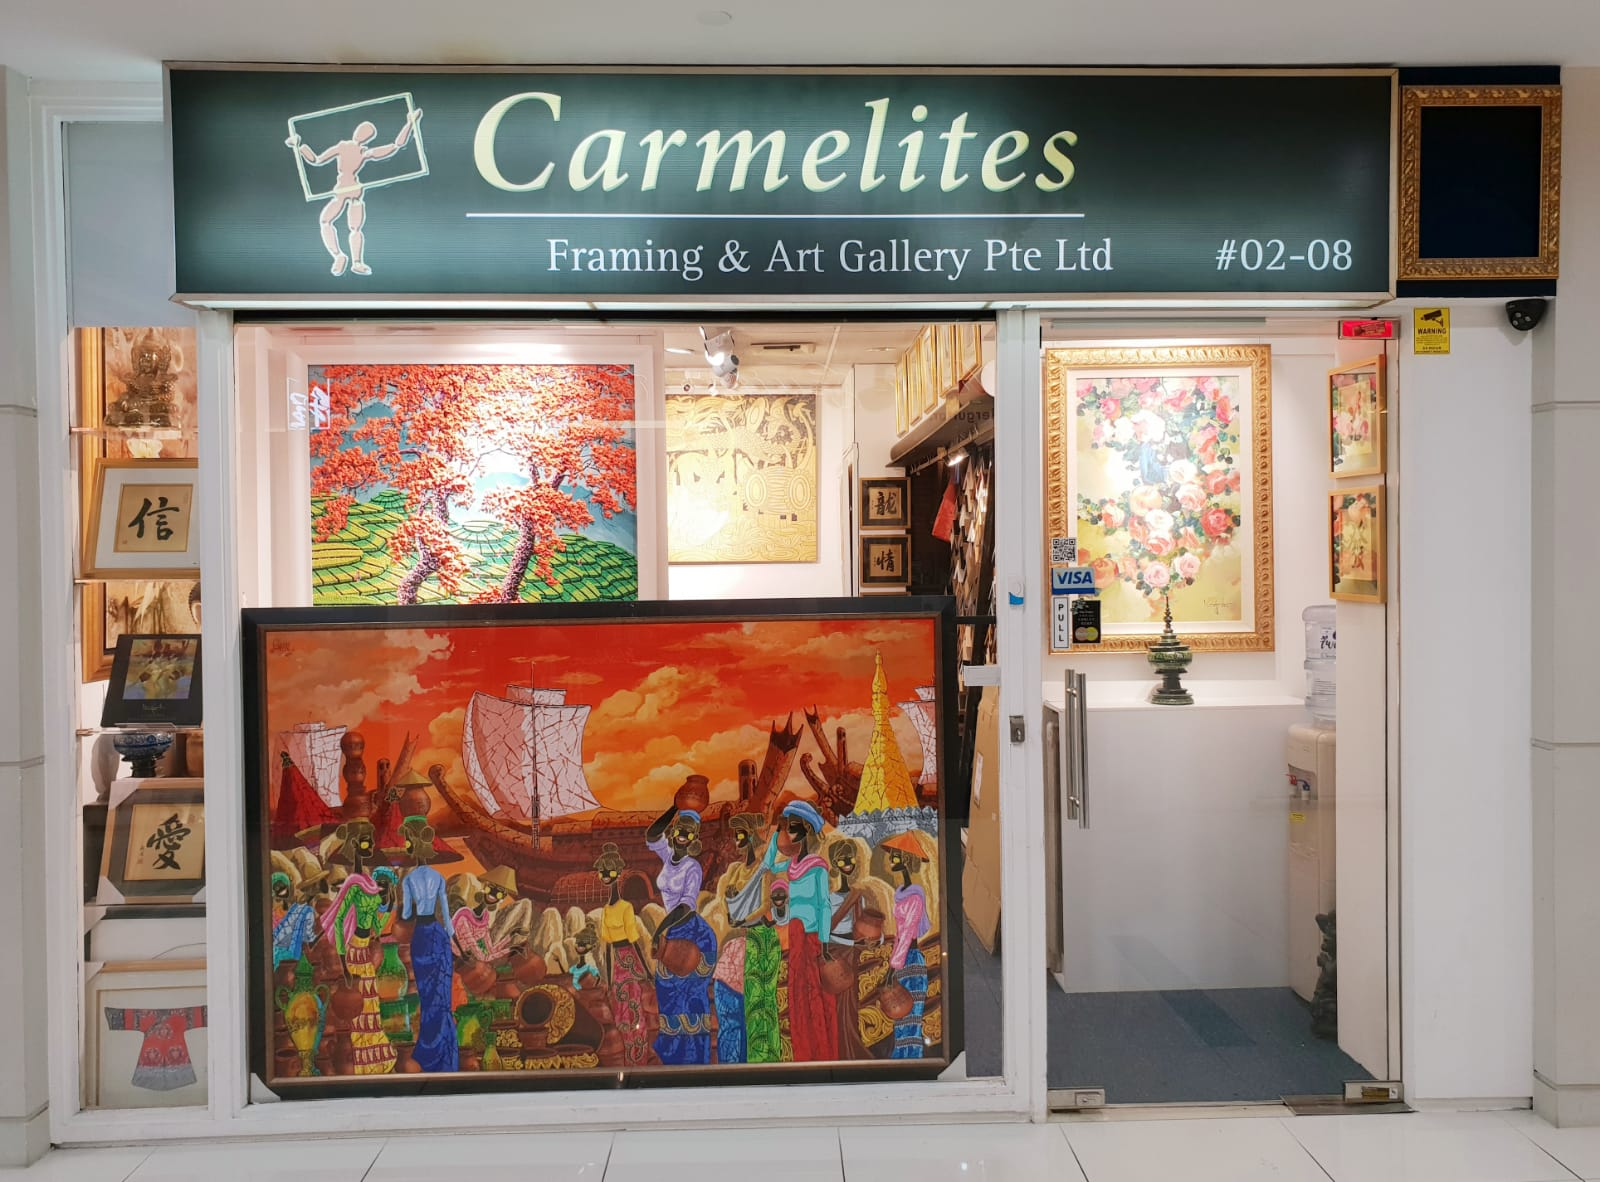 Carmelites Framing & Art Gallery